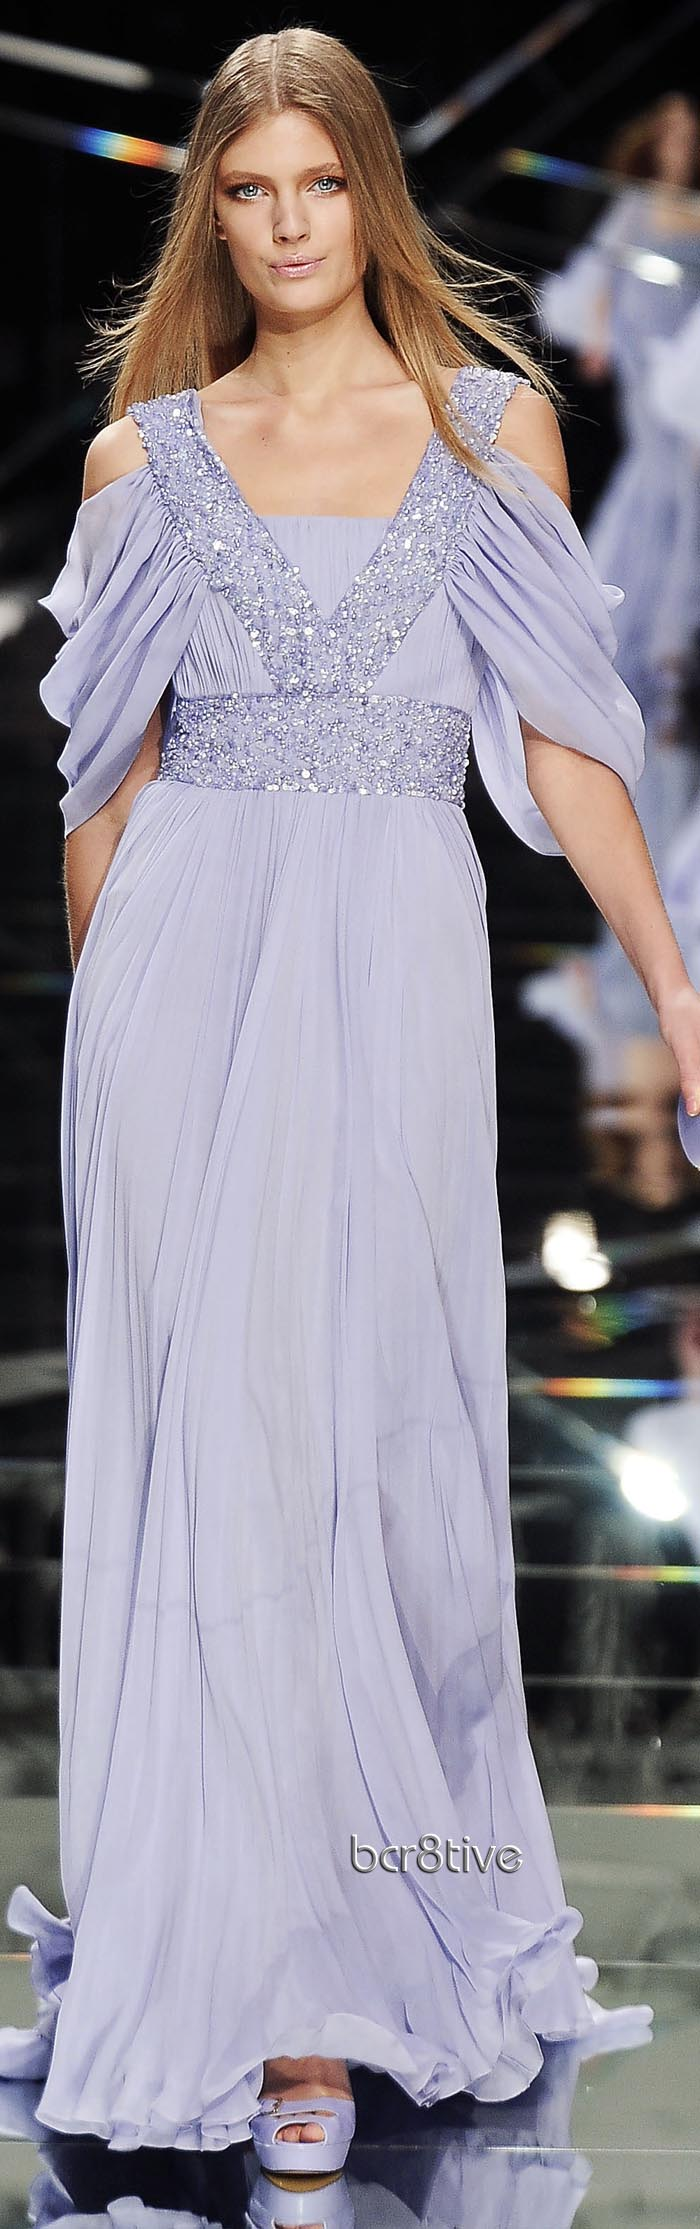 Elie Saab Spring Summer 2009 Ready to Wear